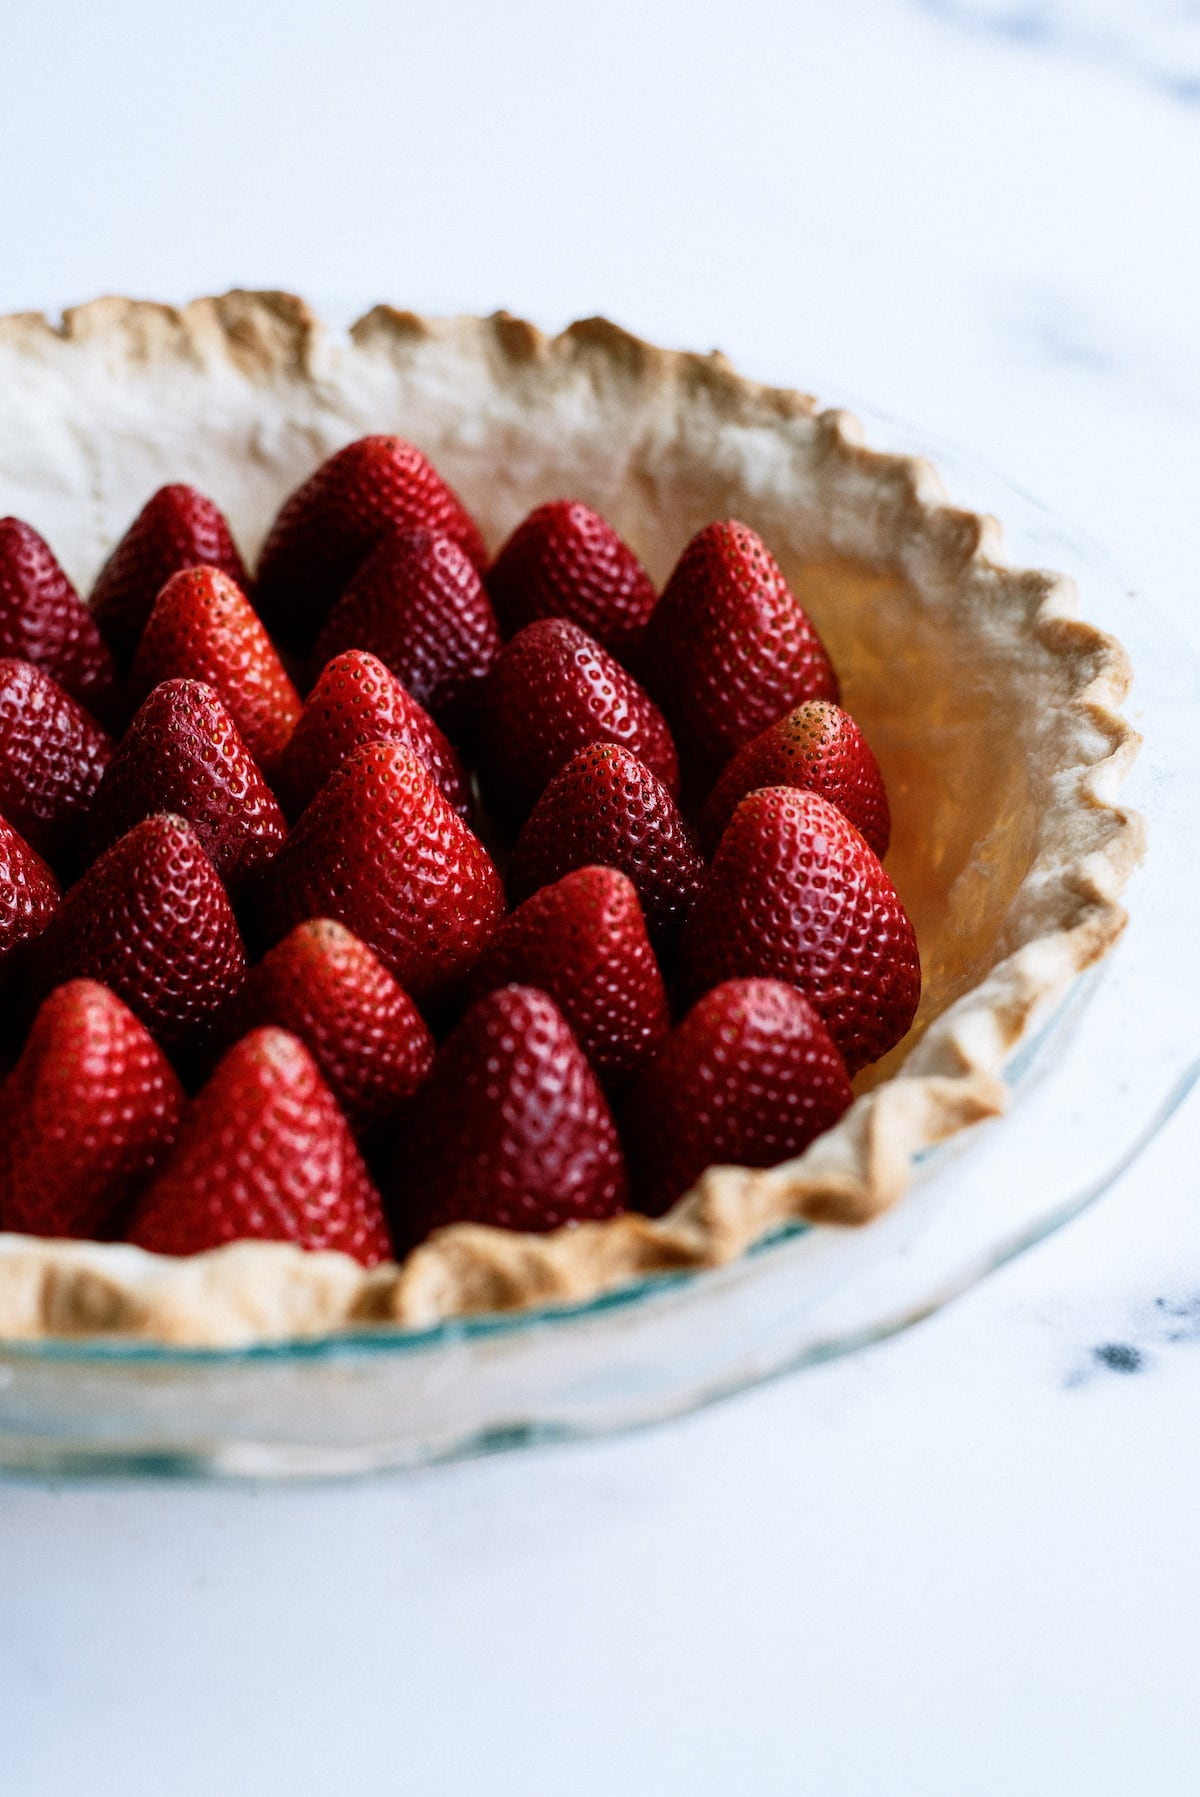 strawberries in a pie shell